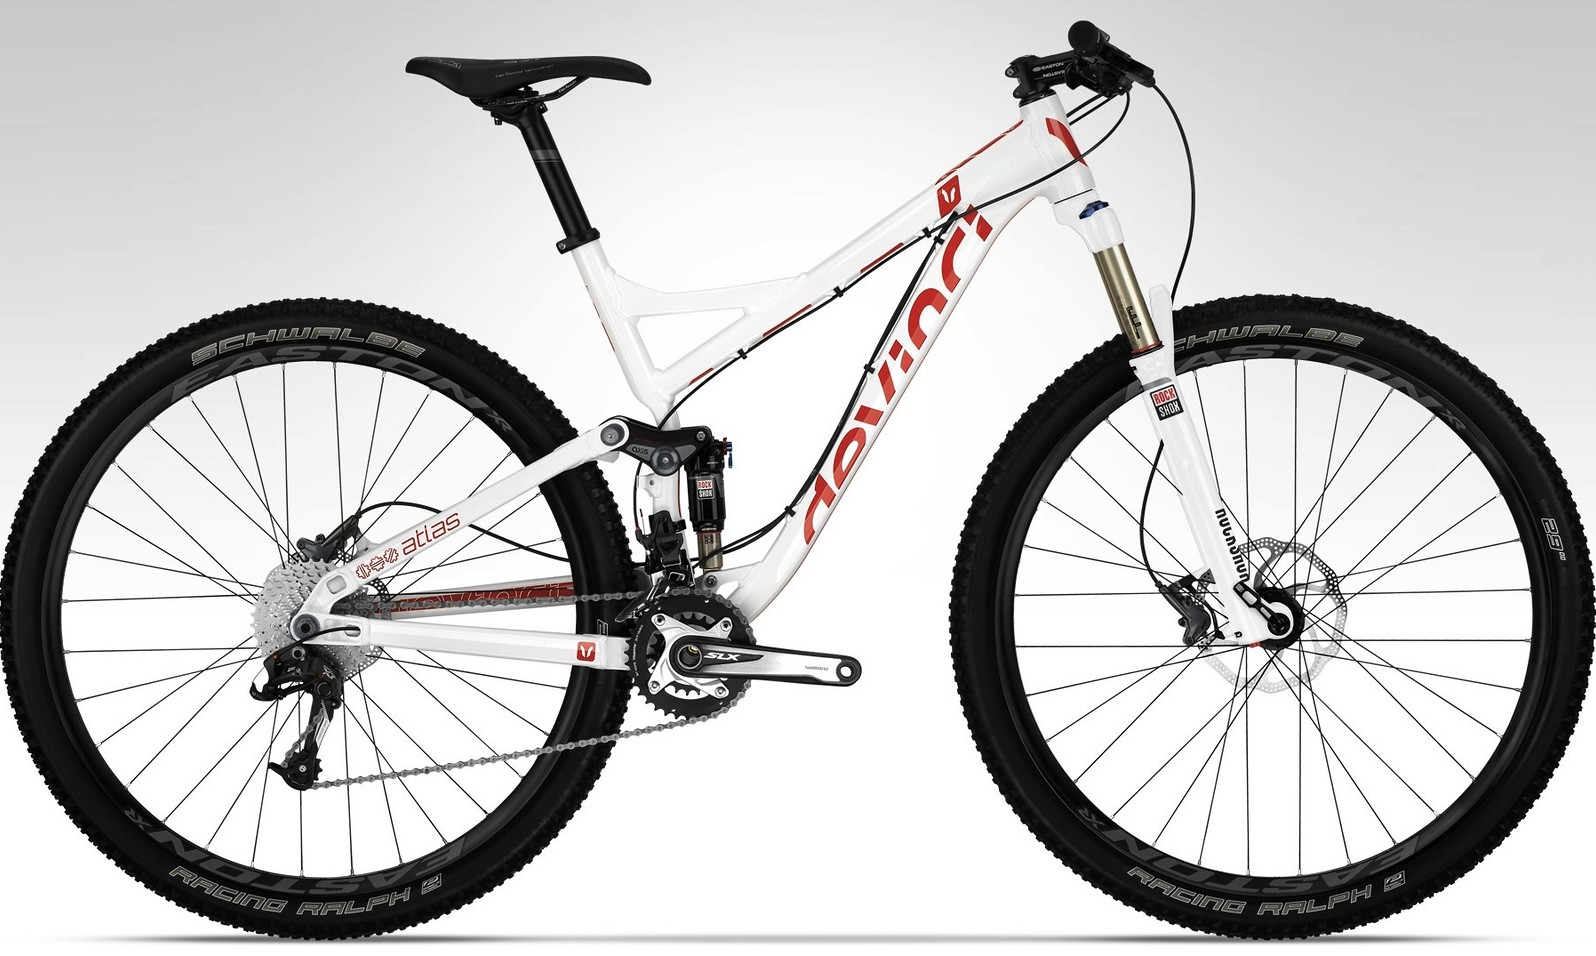 Devinci ATLAS RC bike